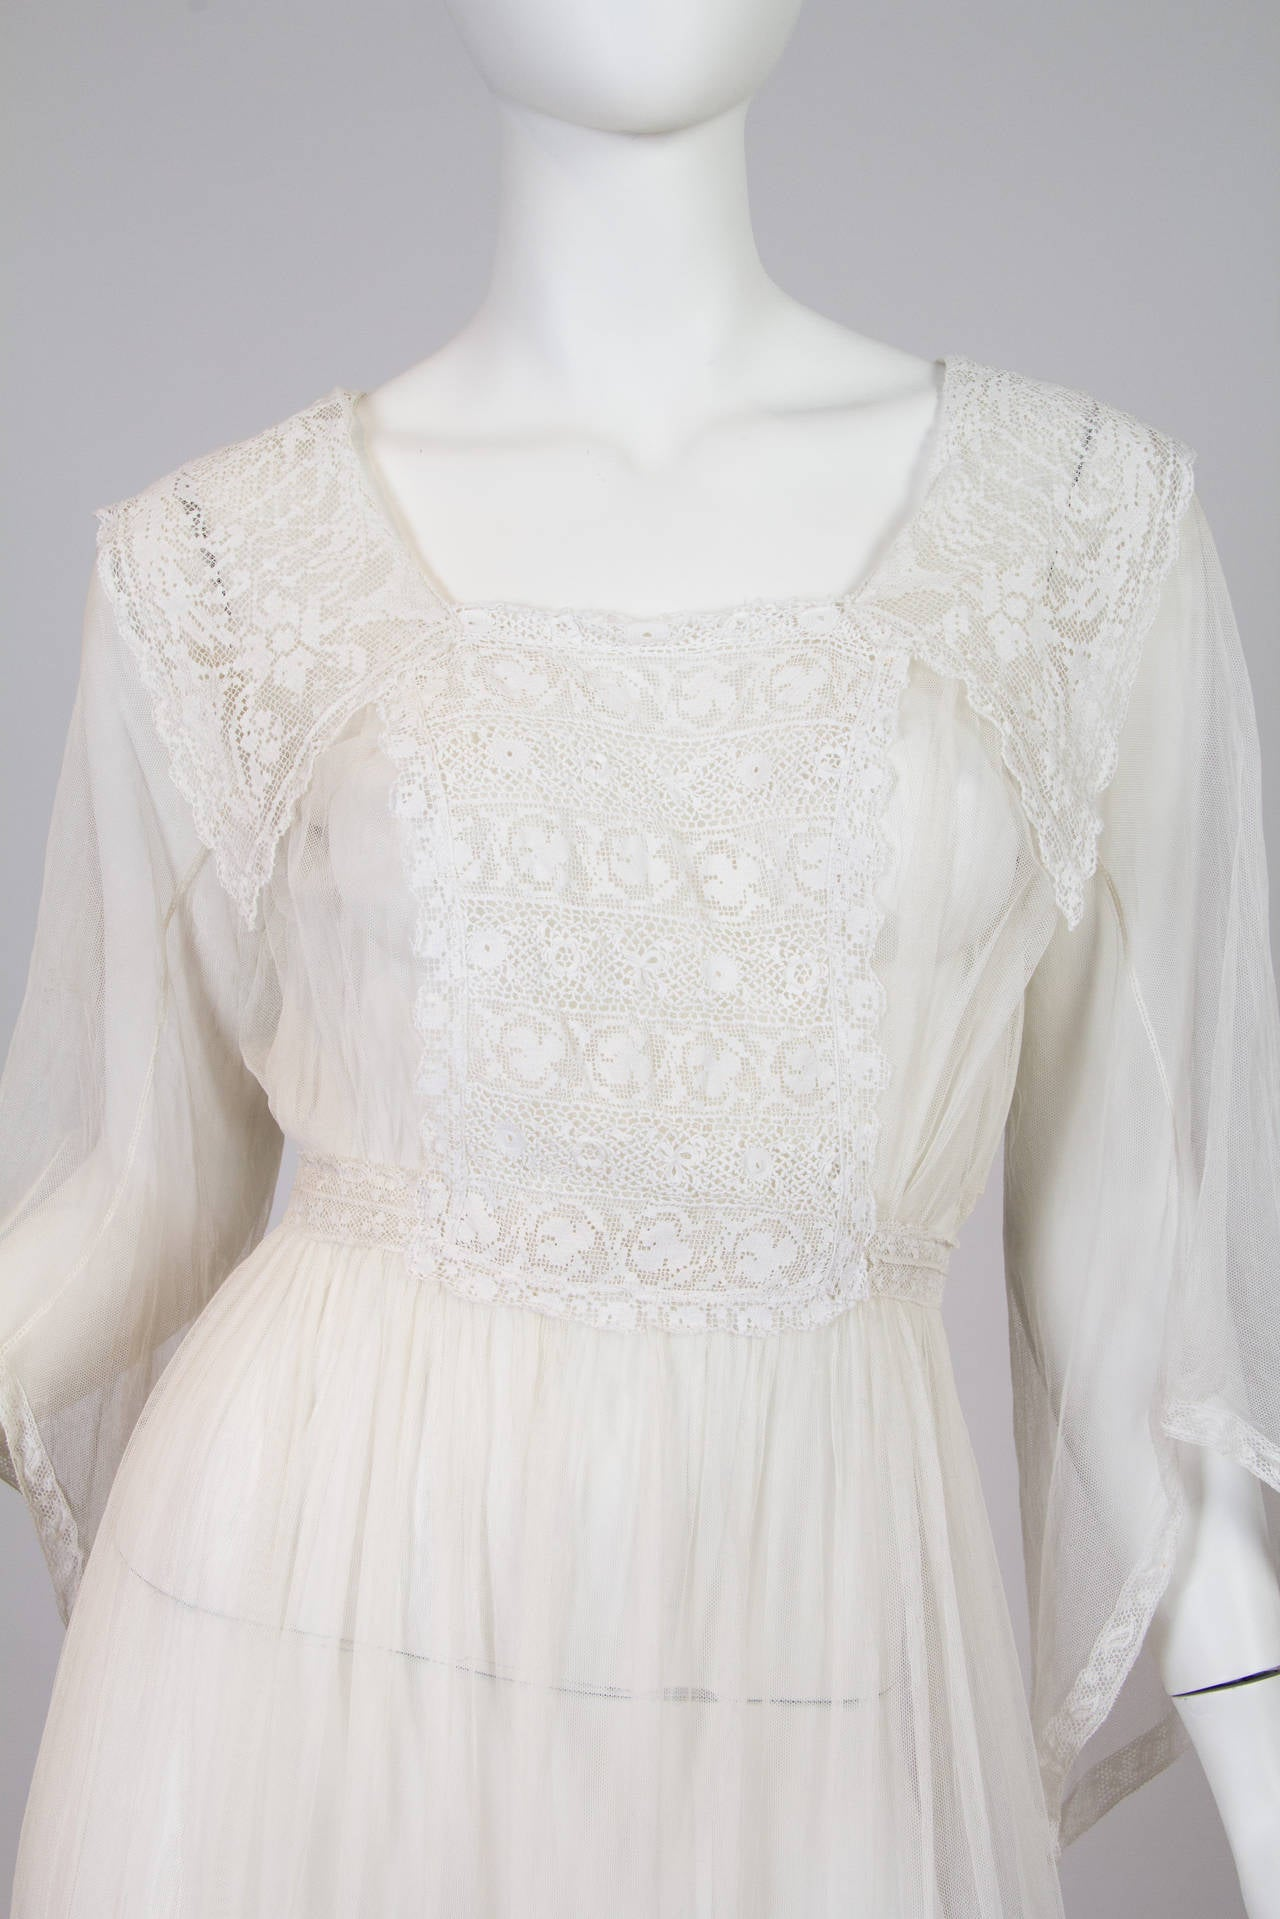 1910s Cotton Net Dress with Irish crochet and lace trim 6